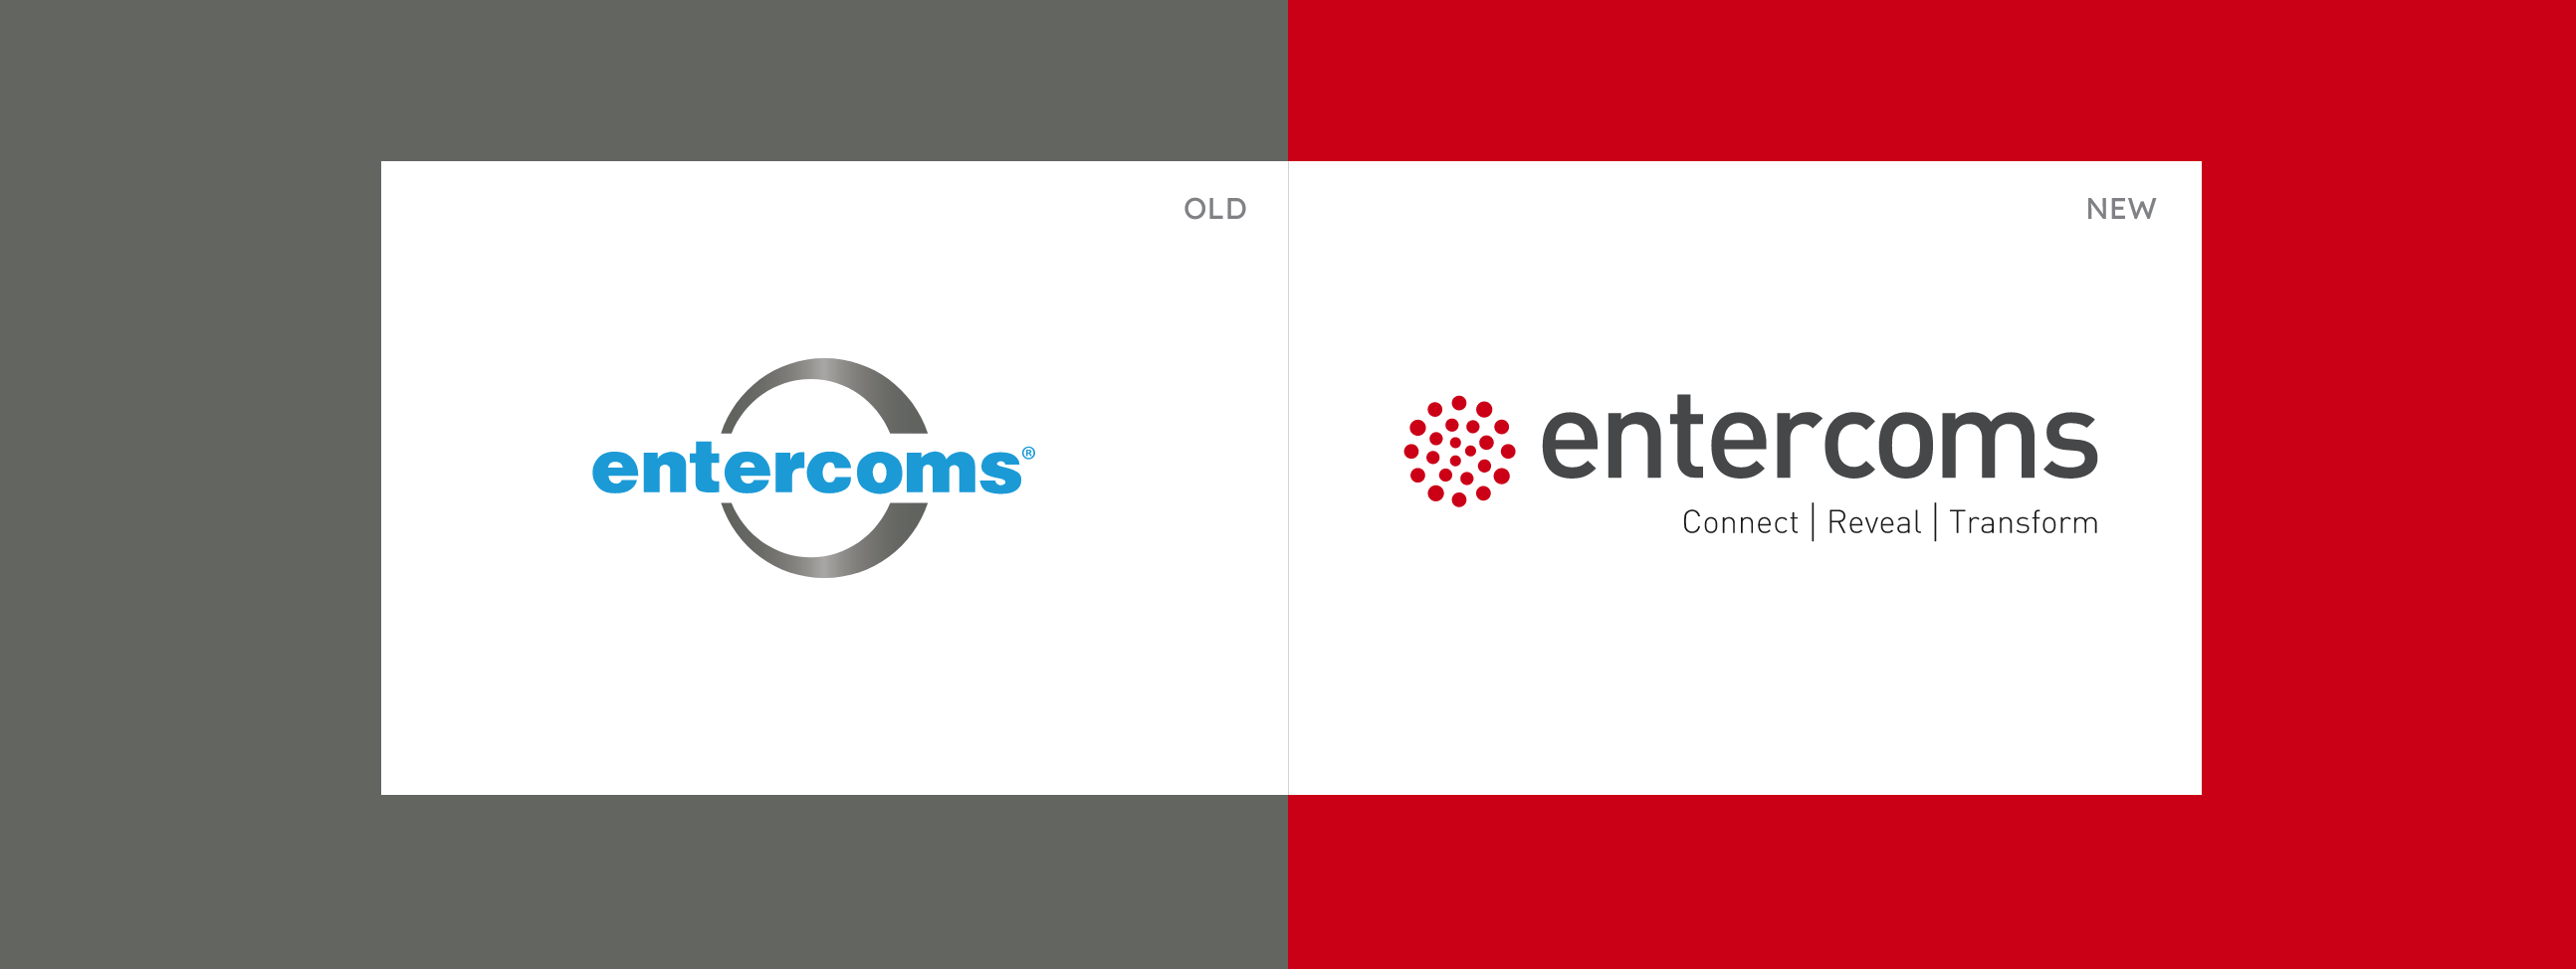 entercoms-portfolio-1